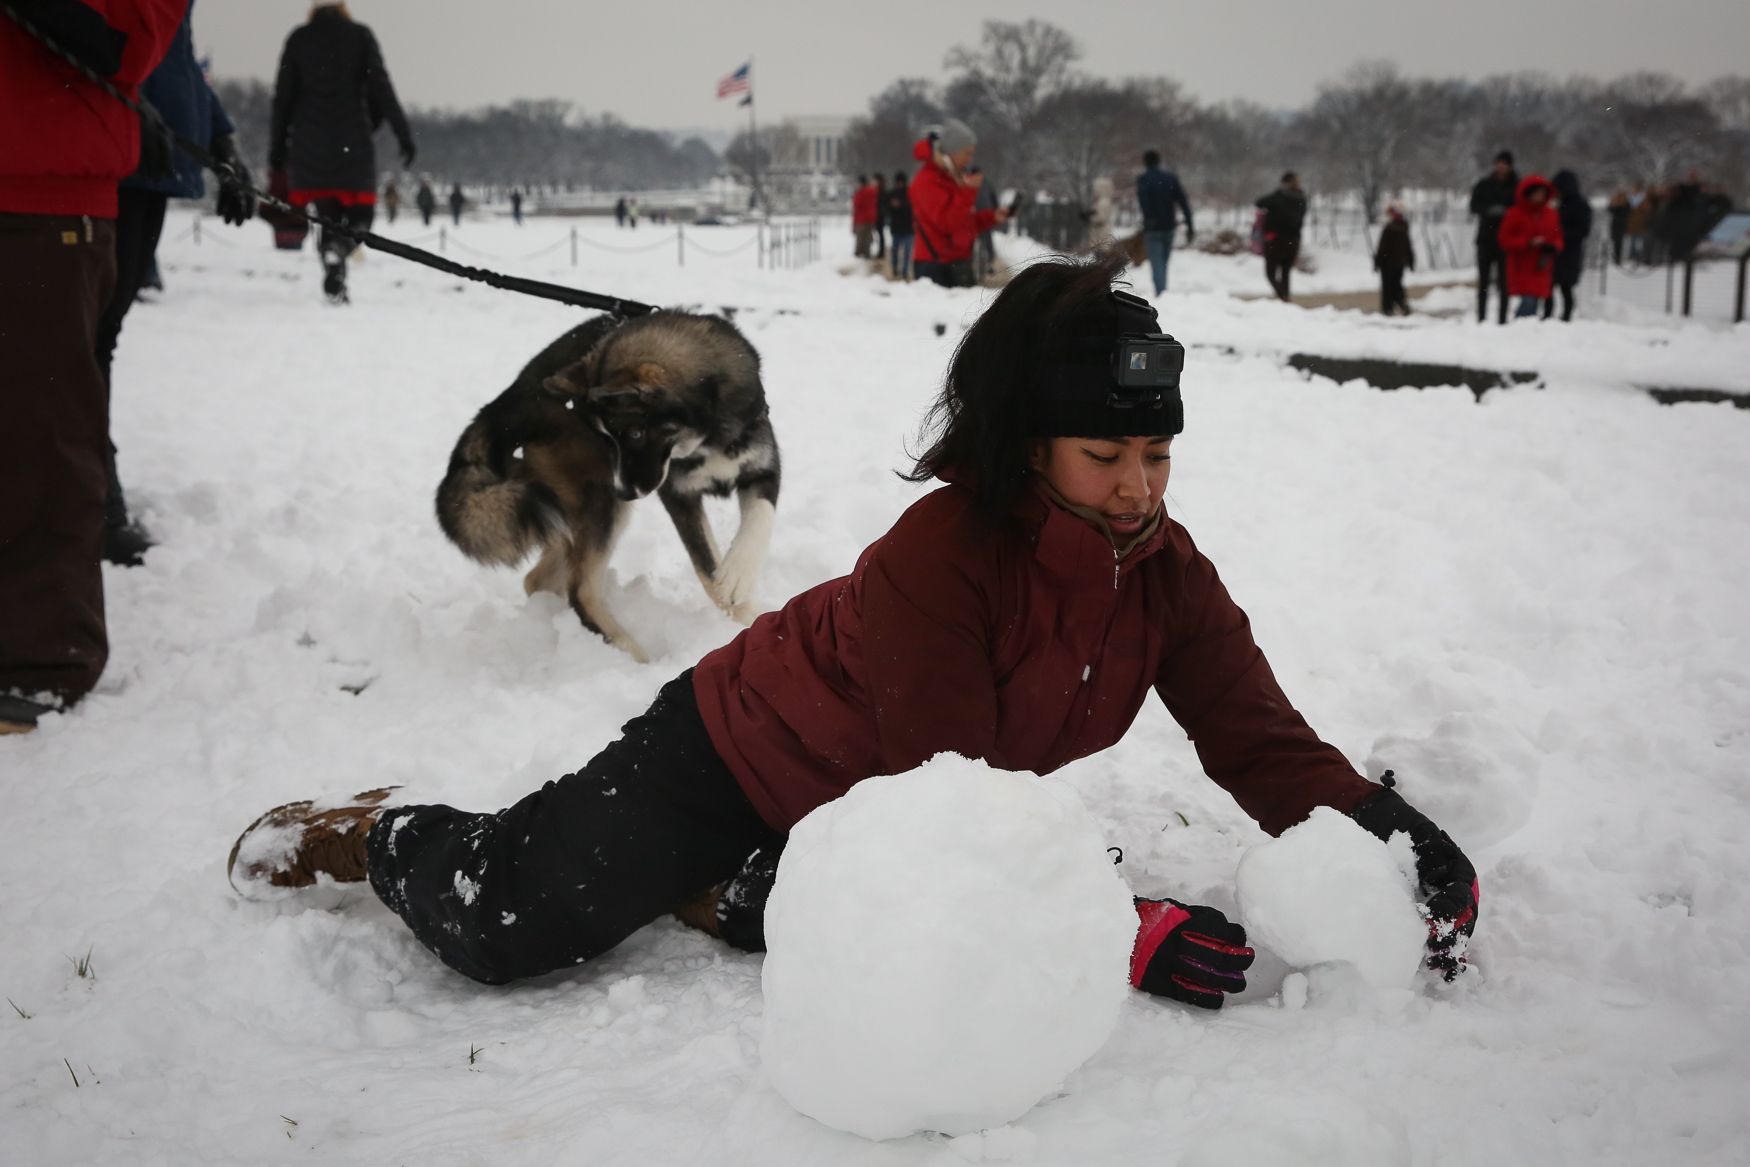 Hundreds of people braved the winter weather to participate in an epic snowball battle on the National Mall on Sunday, January 13. The snowball fight is a D.C. tradition and locals and lucky tourists weren't deterred by the barricades around the monuments due to the federal shutdown. The fun was free and open to everyone, from the young to the young at heart. (Amanda Andrade-Rhoades/DC Refined)